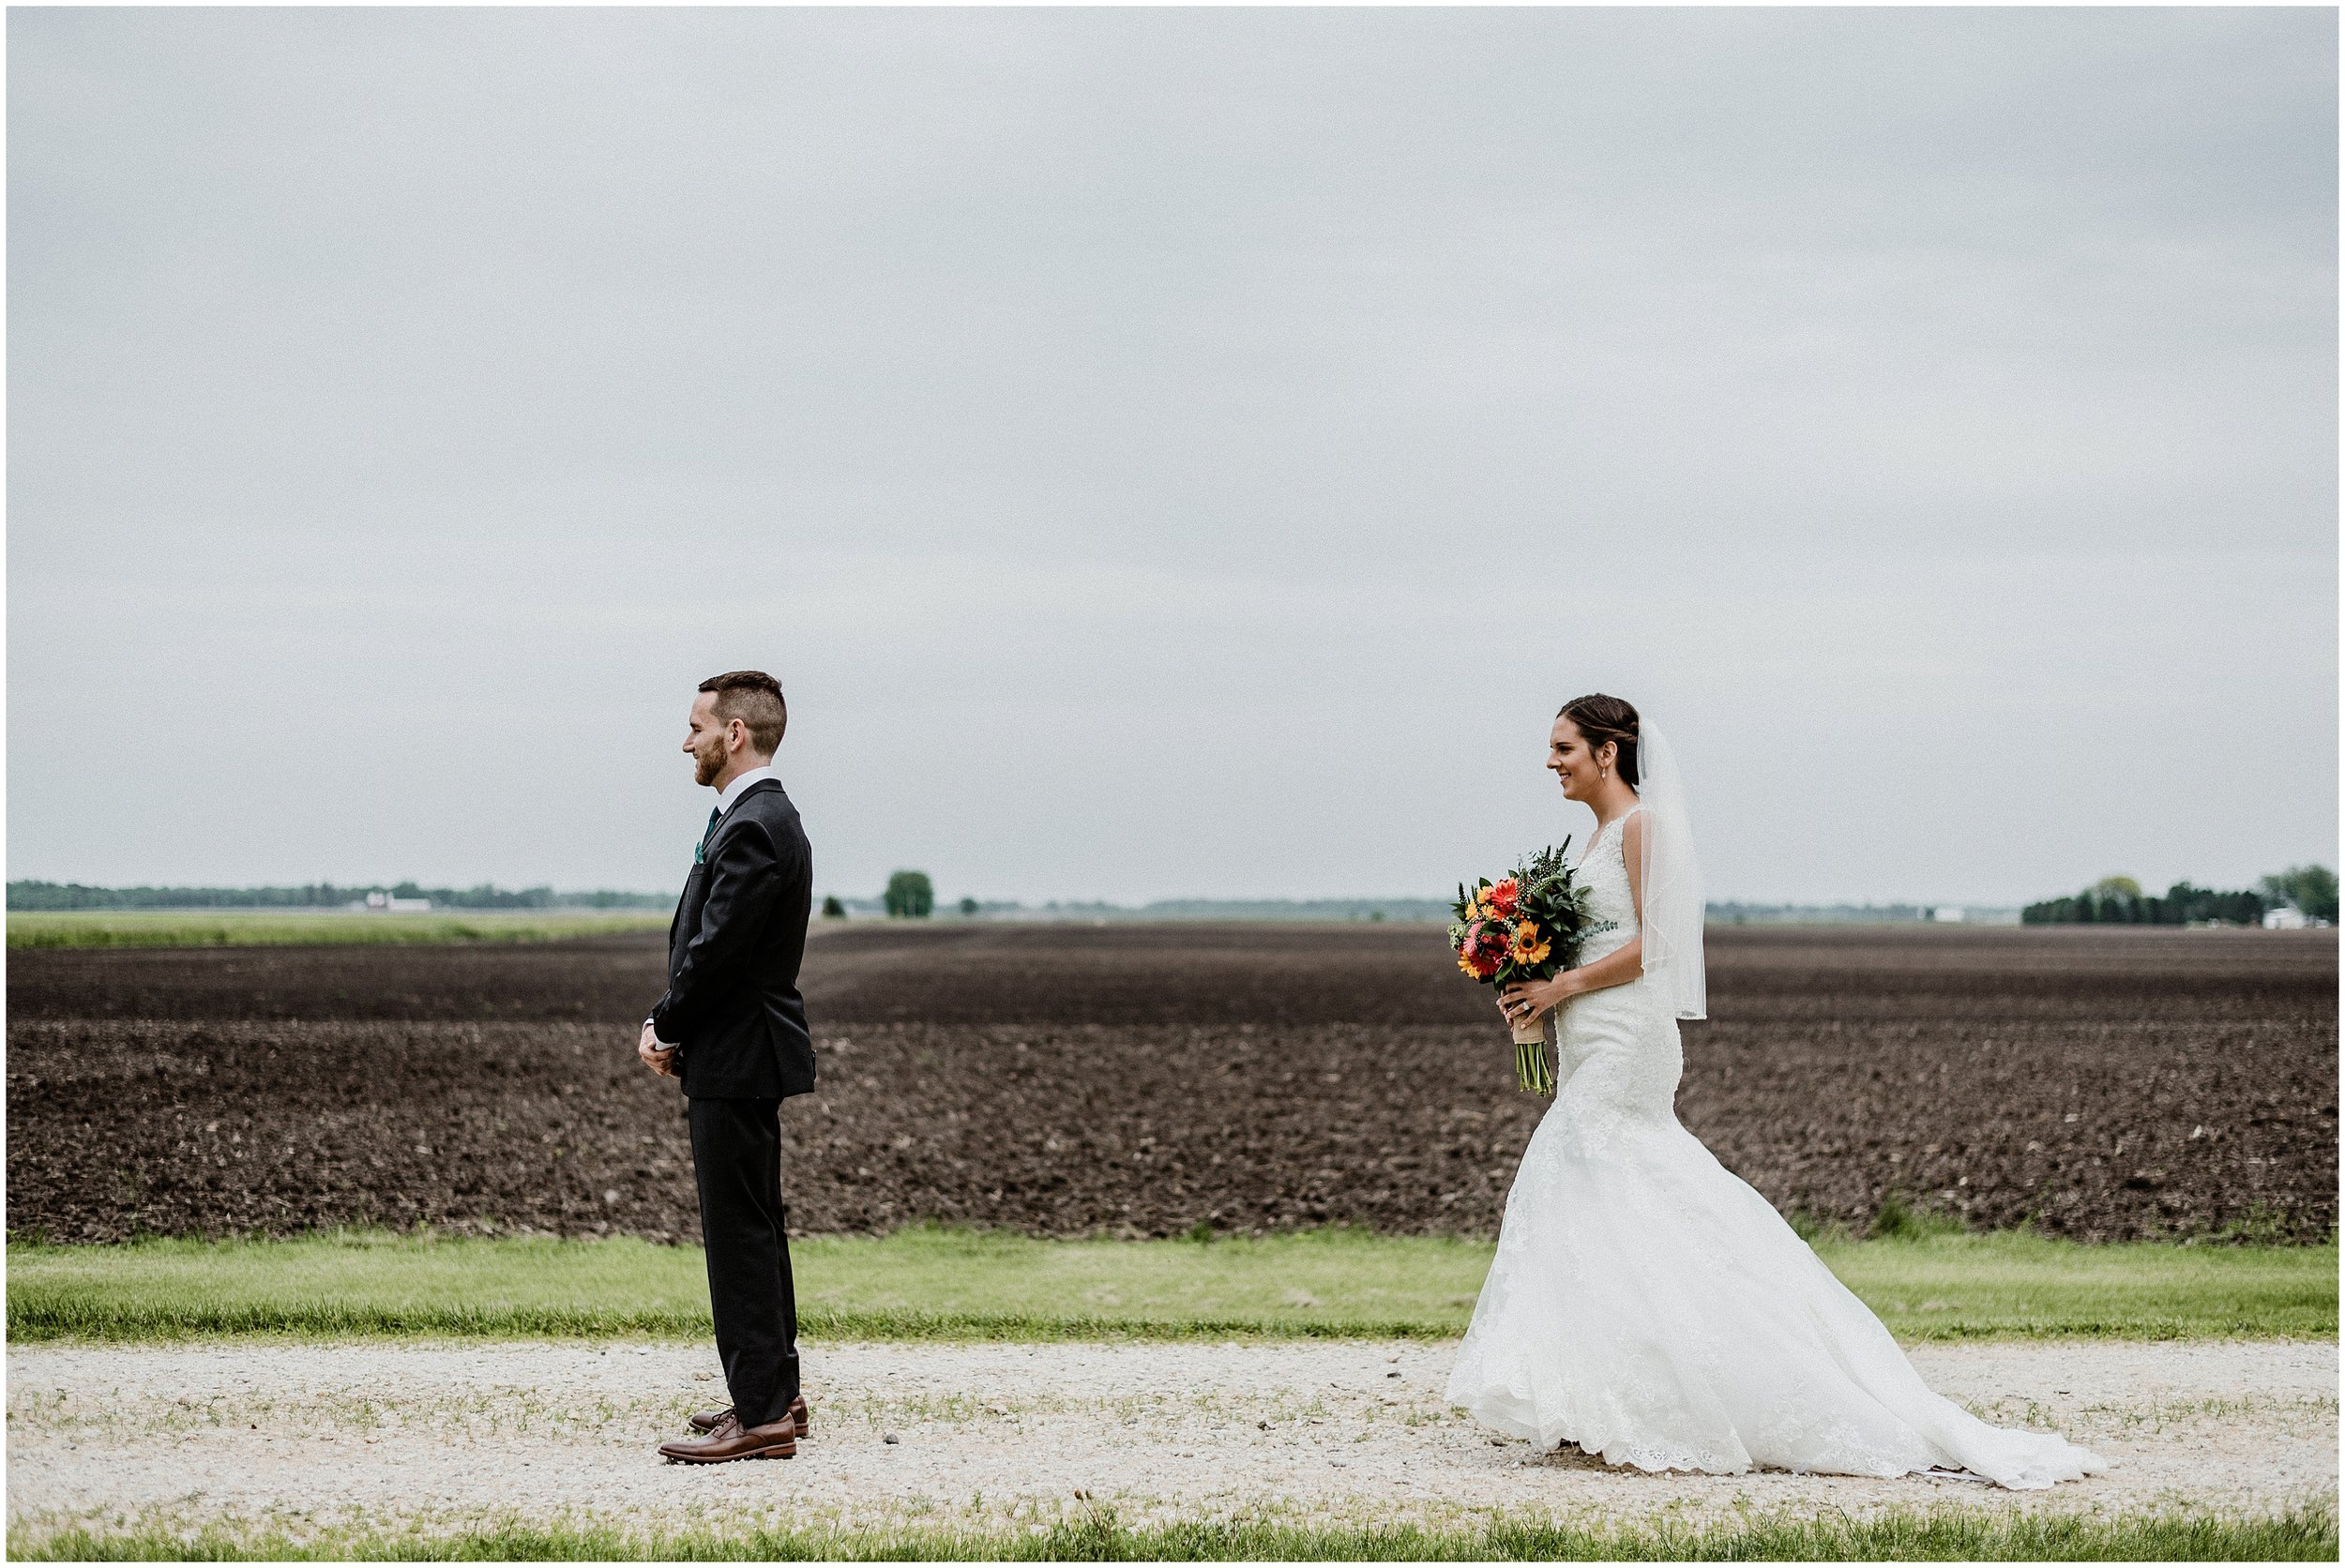 Rachael And Will | Rustic Romantic Barn Wedding | The Mora Farm Waterman, IL | Chicago Wedding Photographer